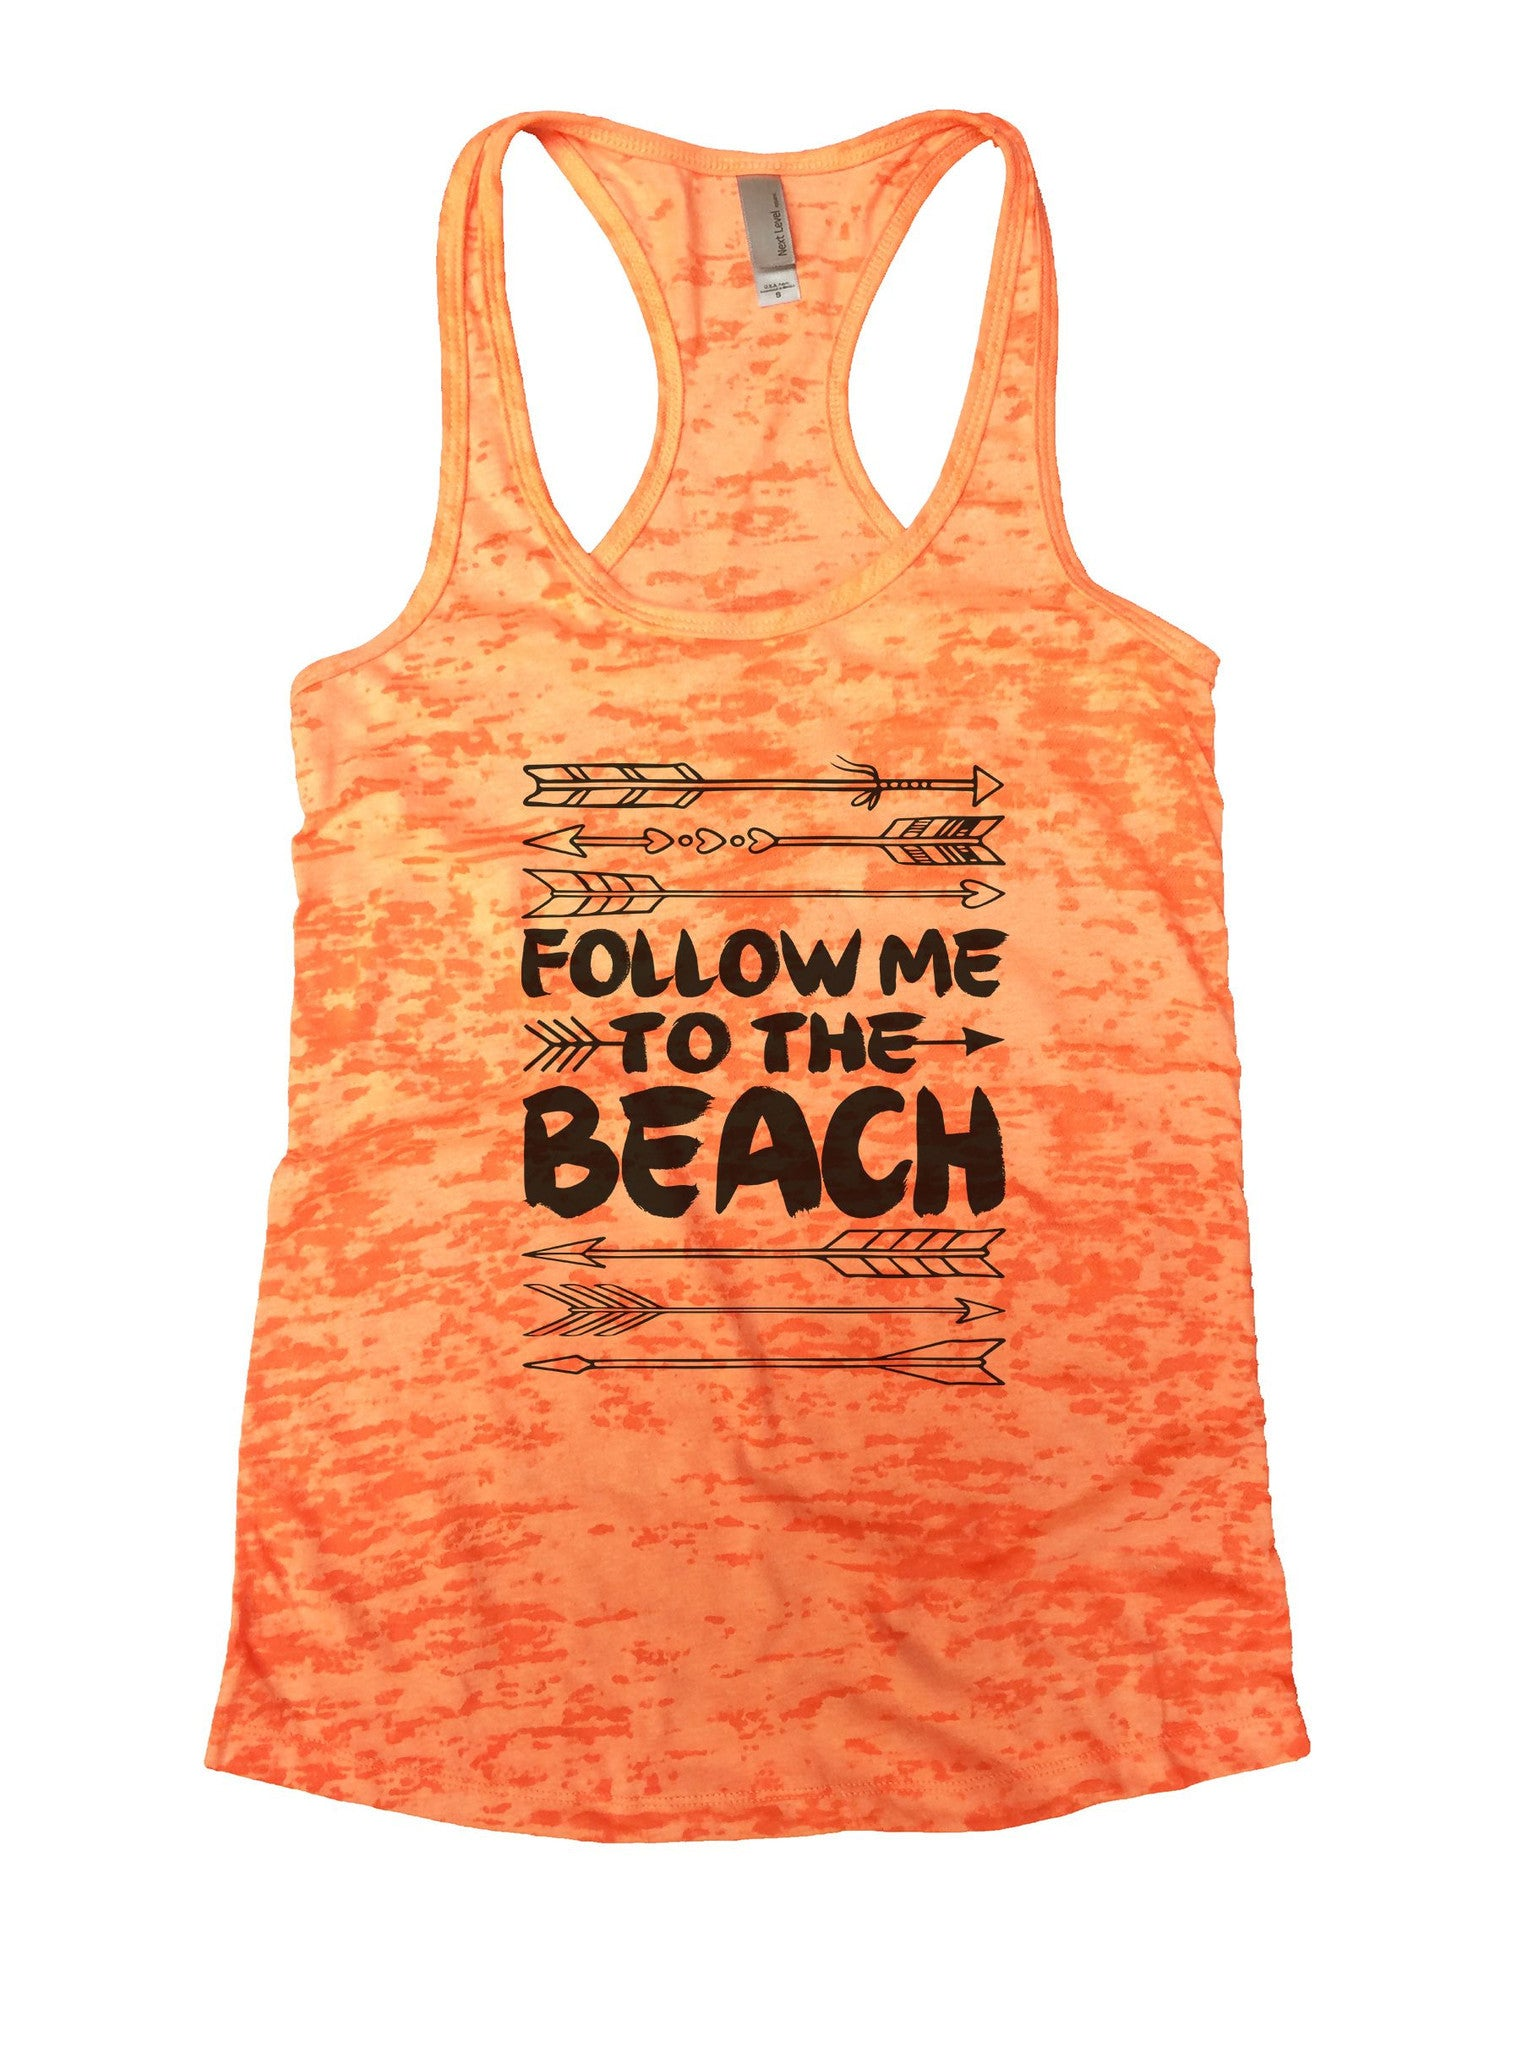 Follow Me To The Beach Burnout Tank Top By BurnoutTankTops.com - 931 - Funny Shirts Tank Tops Burnouts and Triblends  - 5